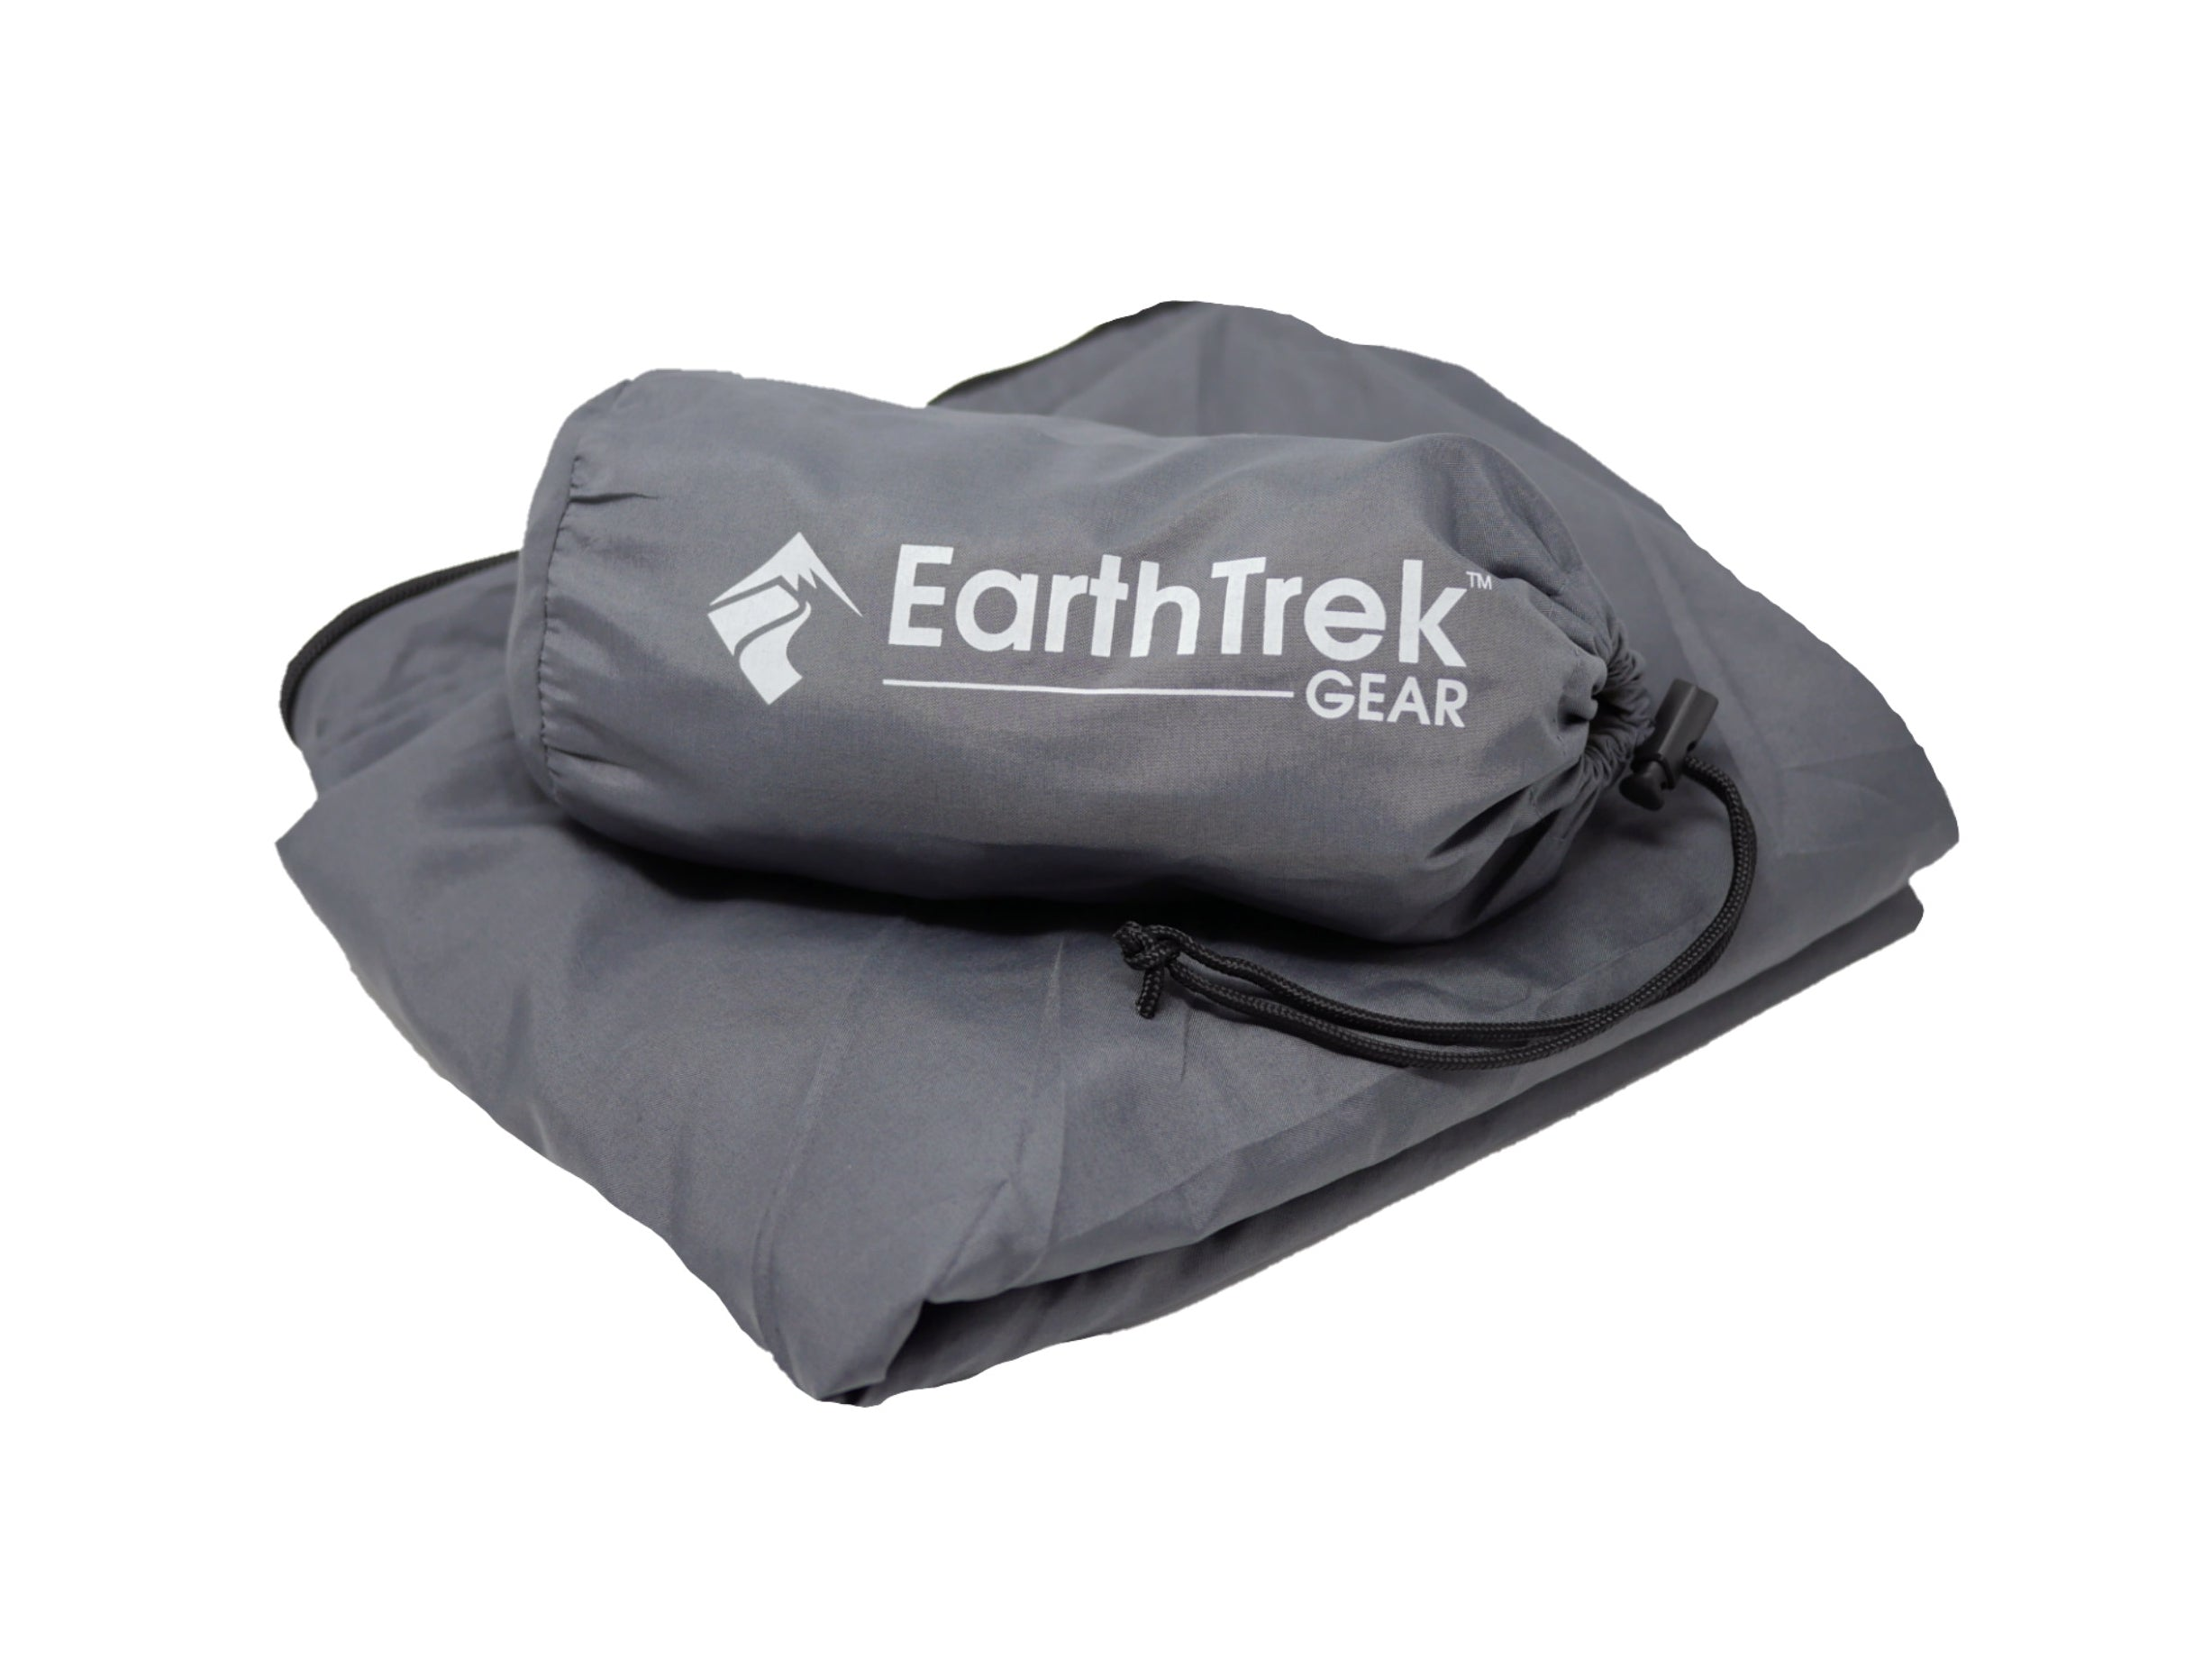 extra-large-comfy-travel-sleepingbag-liner-earth-trek-logo